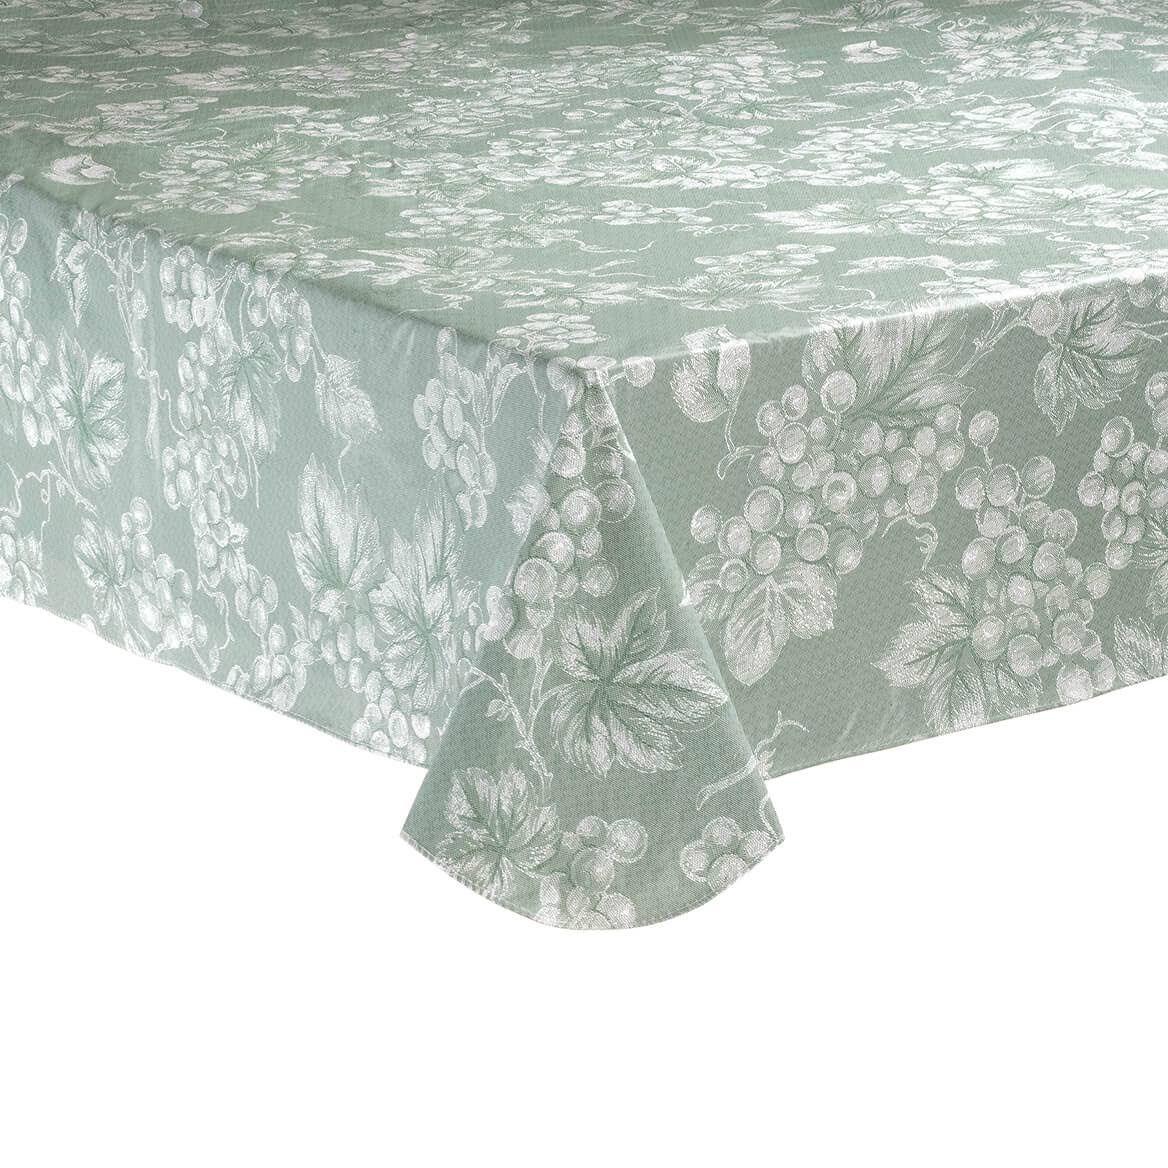 Sage Green Grapevine Vinyl Tablecloth 60x84 Oblong